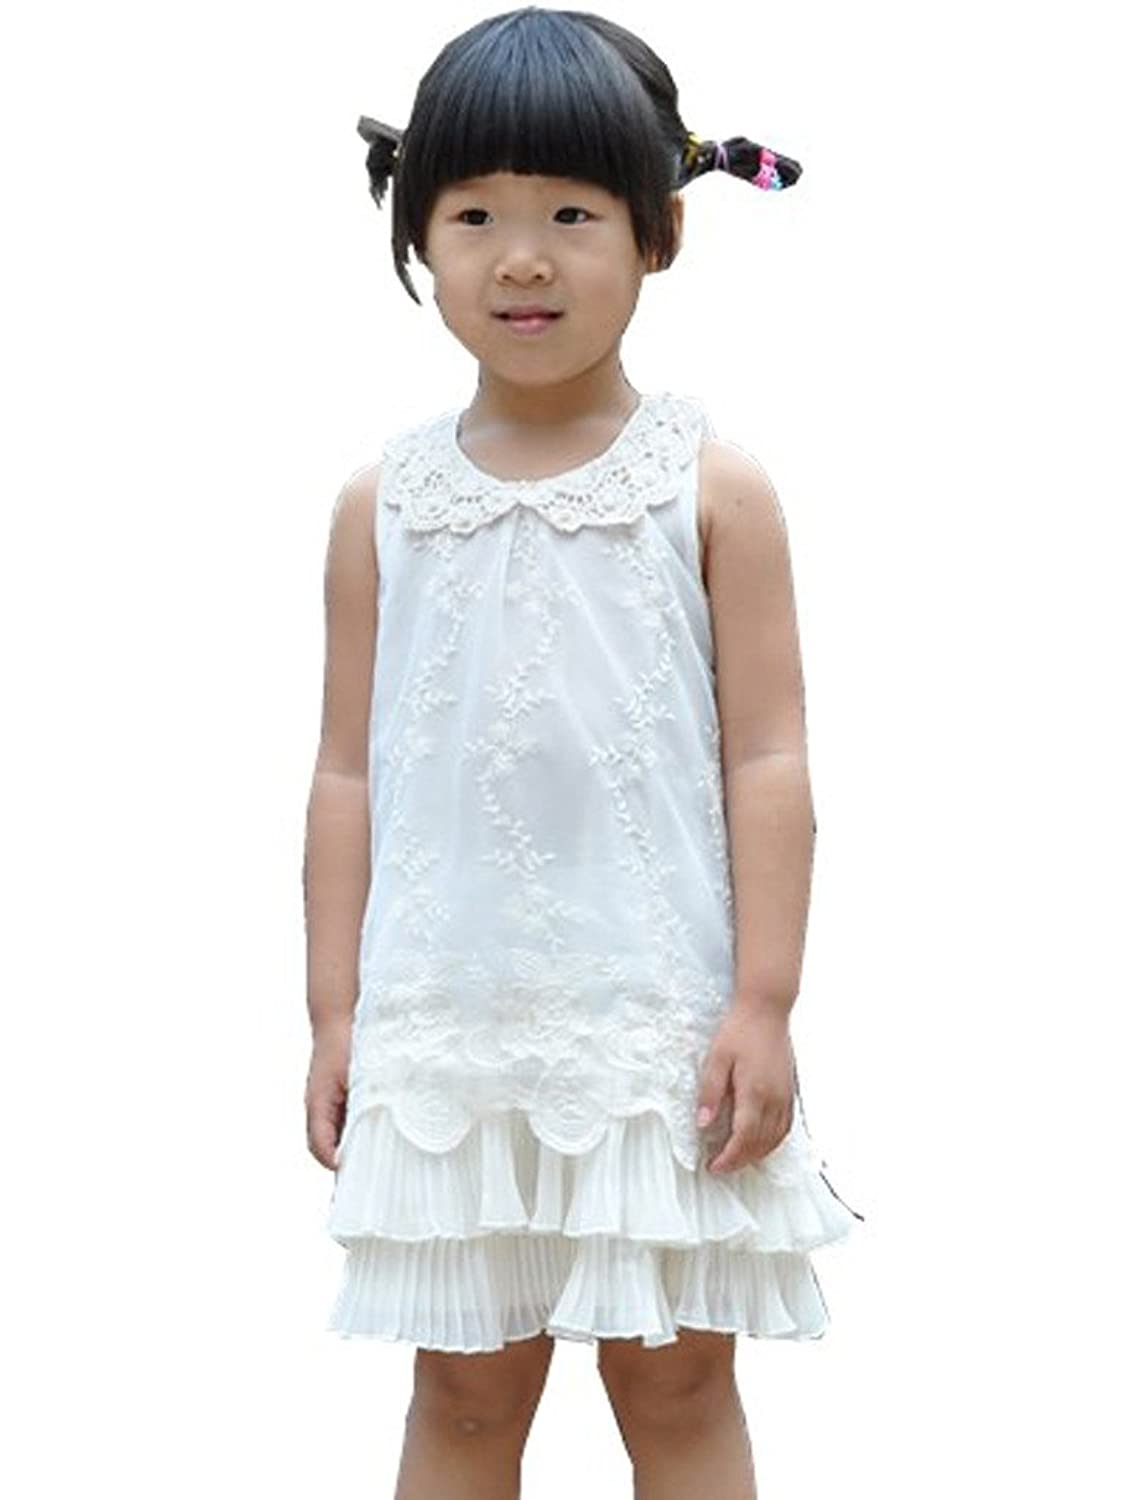 Vintage Style Children's Clothing: Girls, Boys, Baby, Toddler Bow Dream Vintage Flower Girls Dress $29.99 AT vintagedancer.com